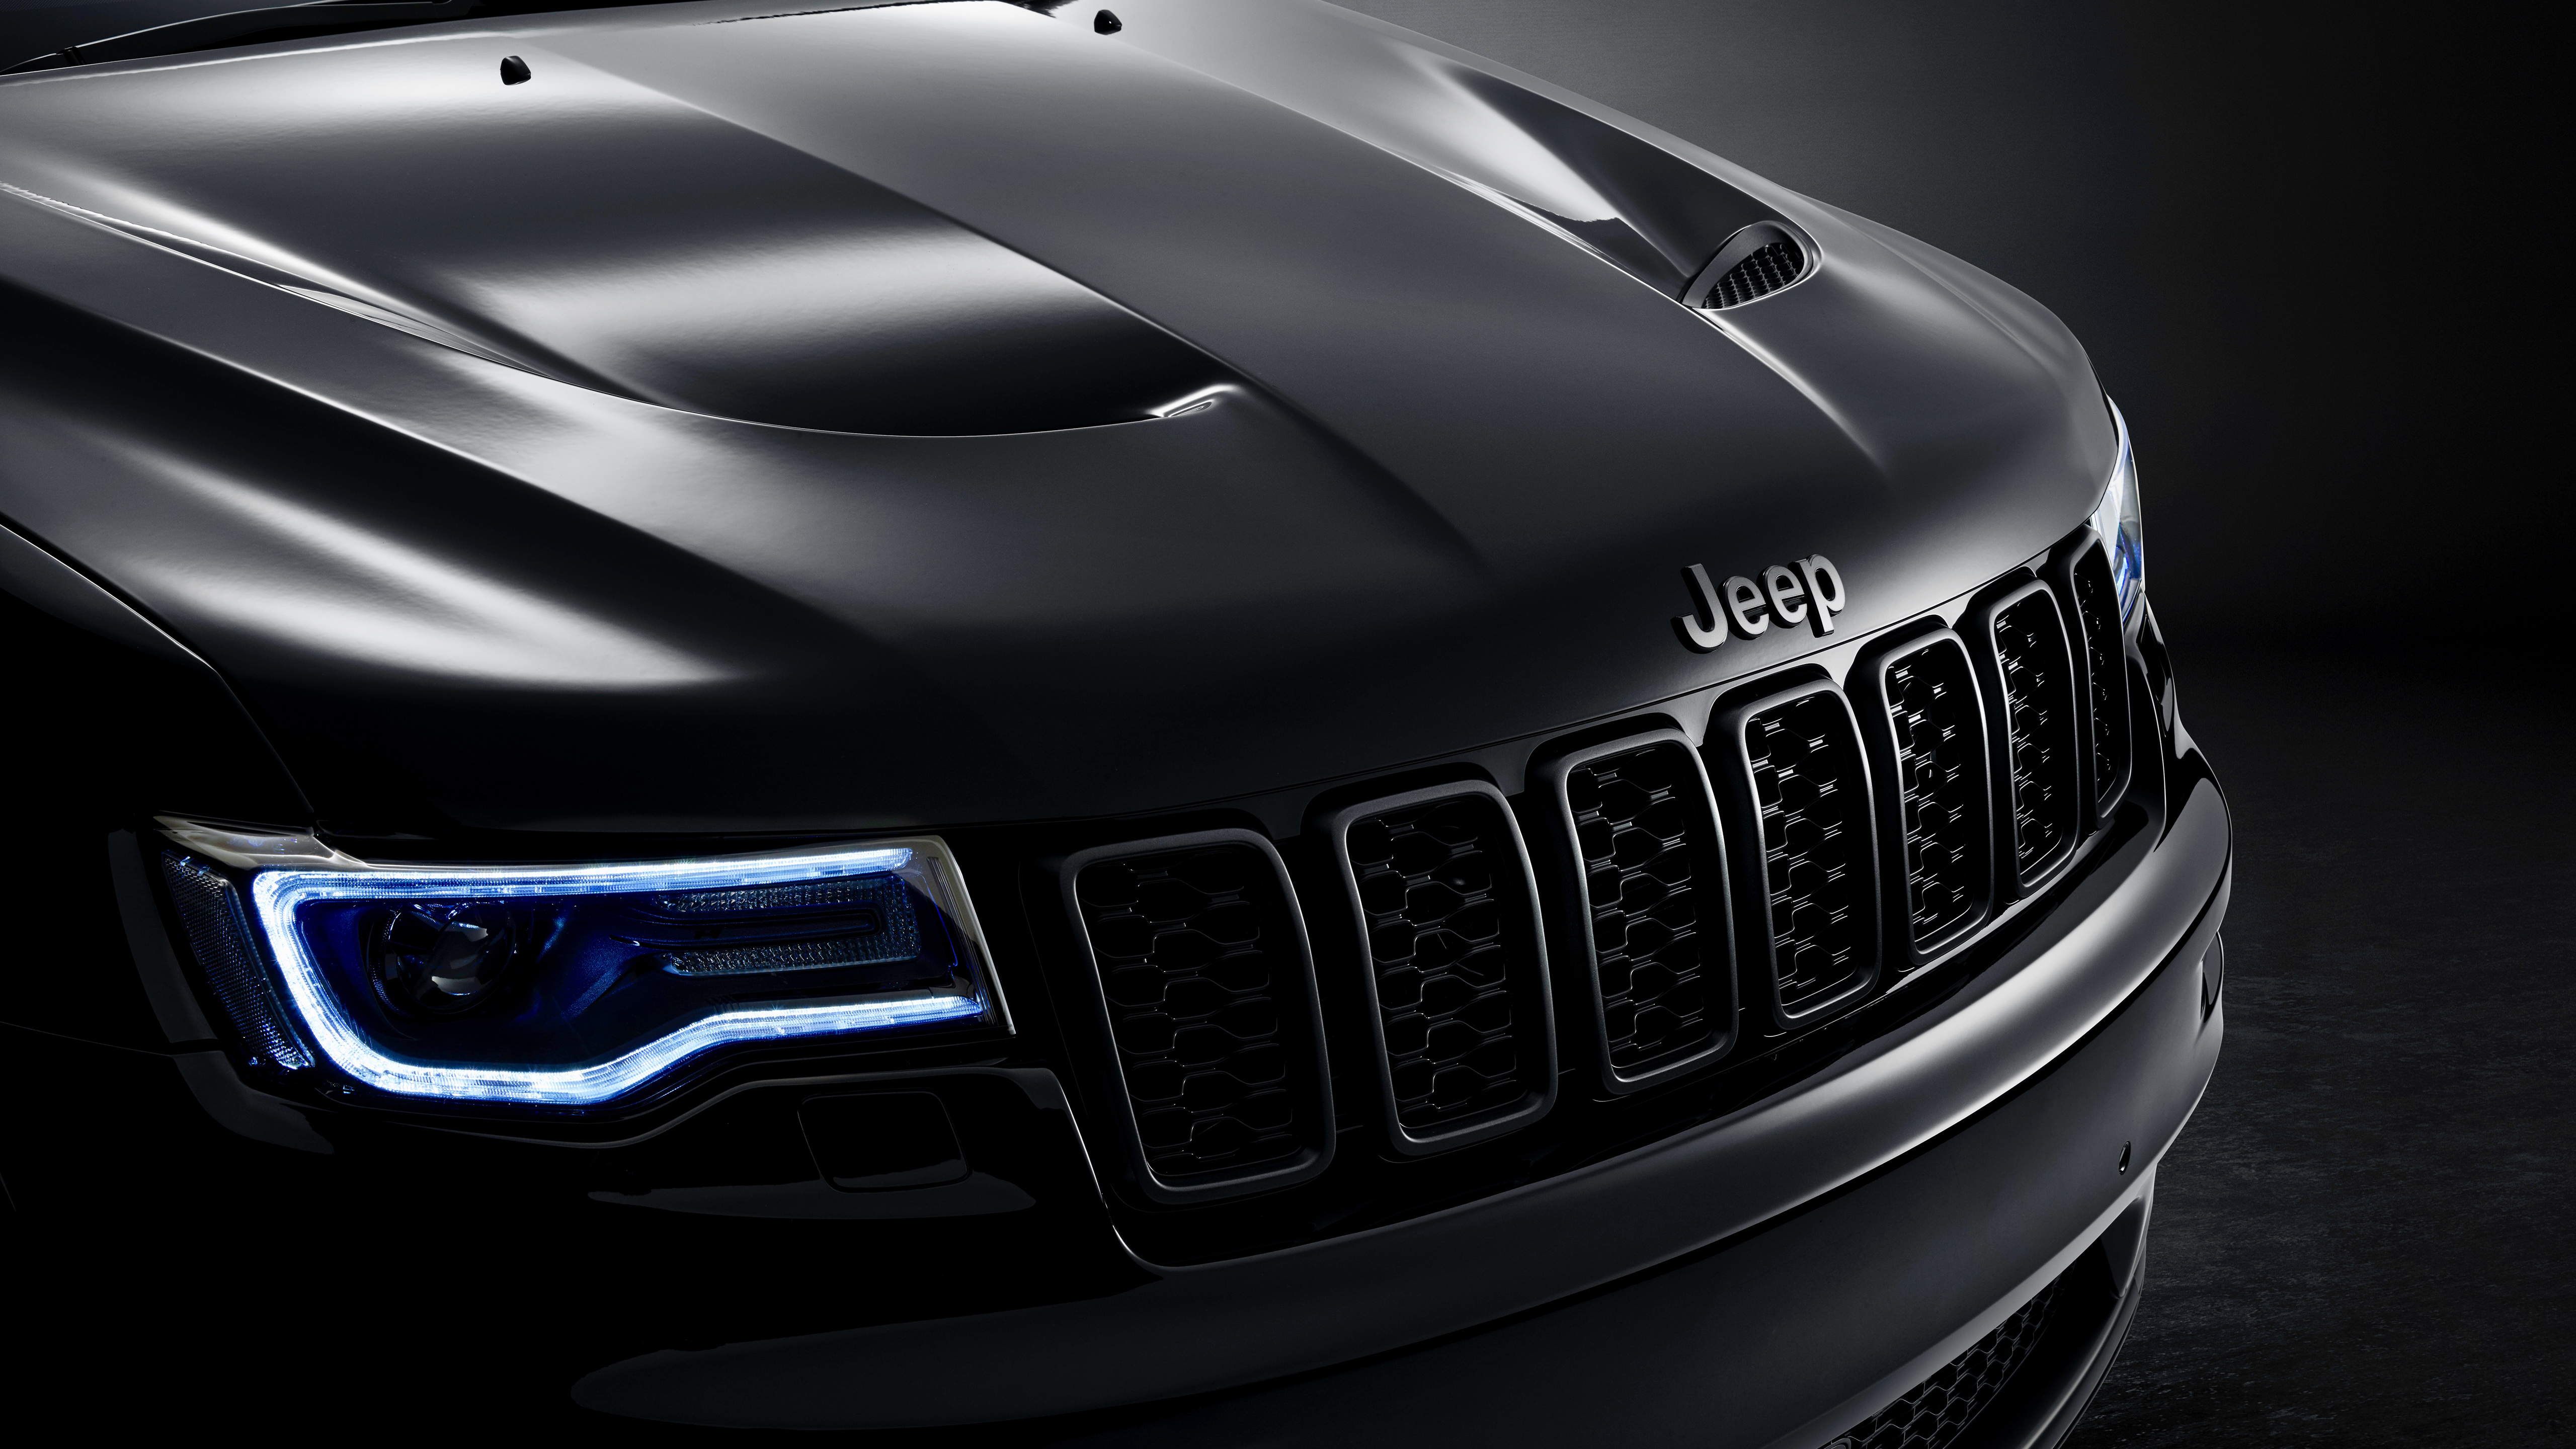 jeep grand cherokee s limited 2019 5k 2 HD